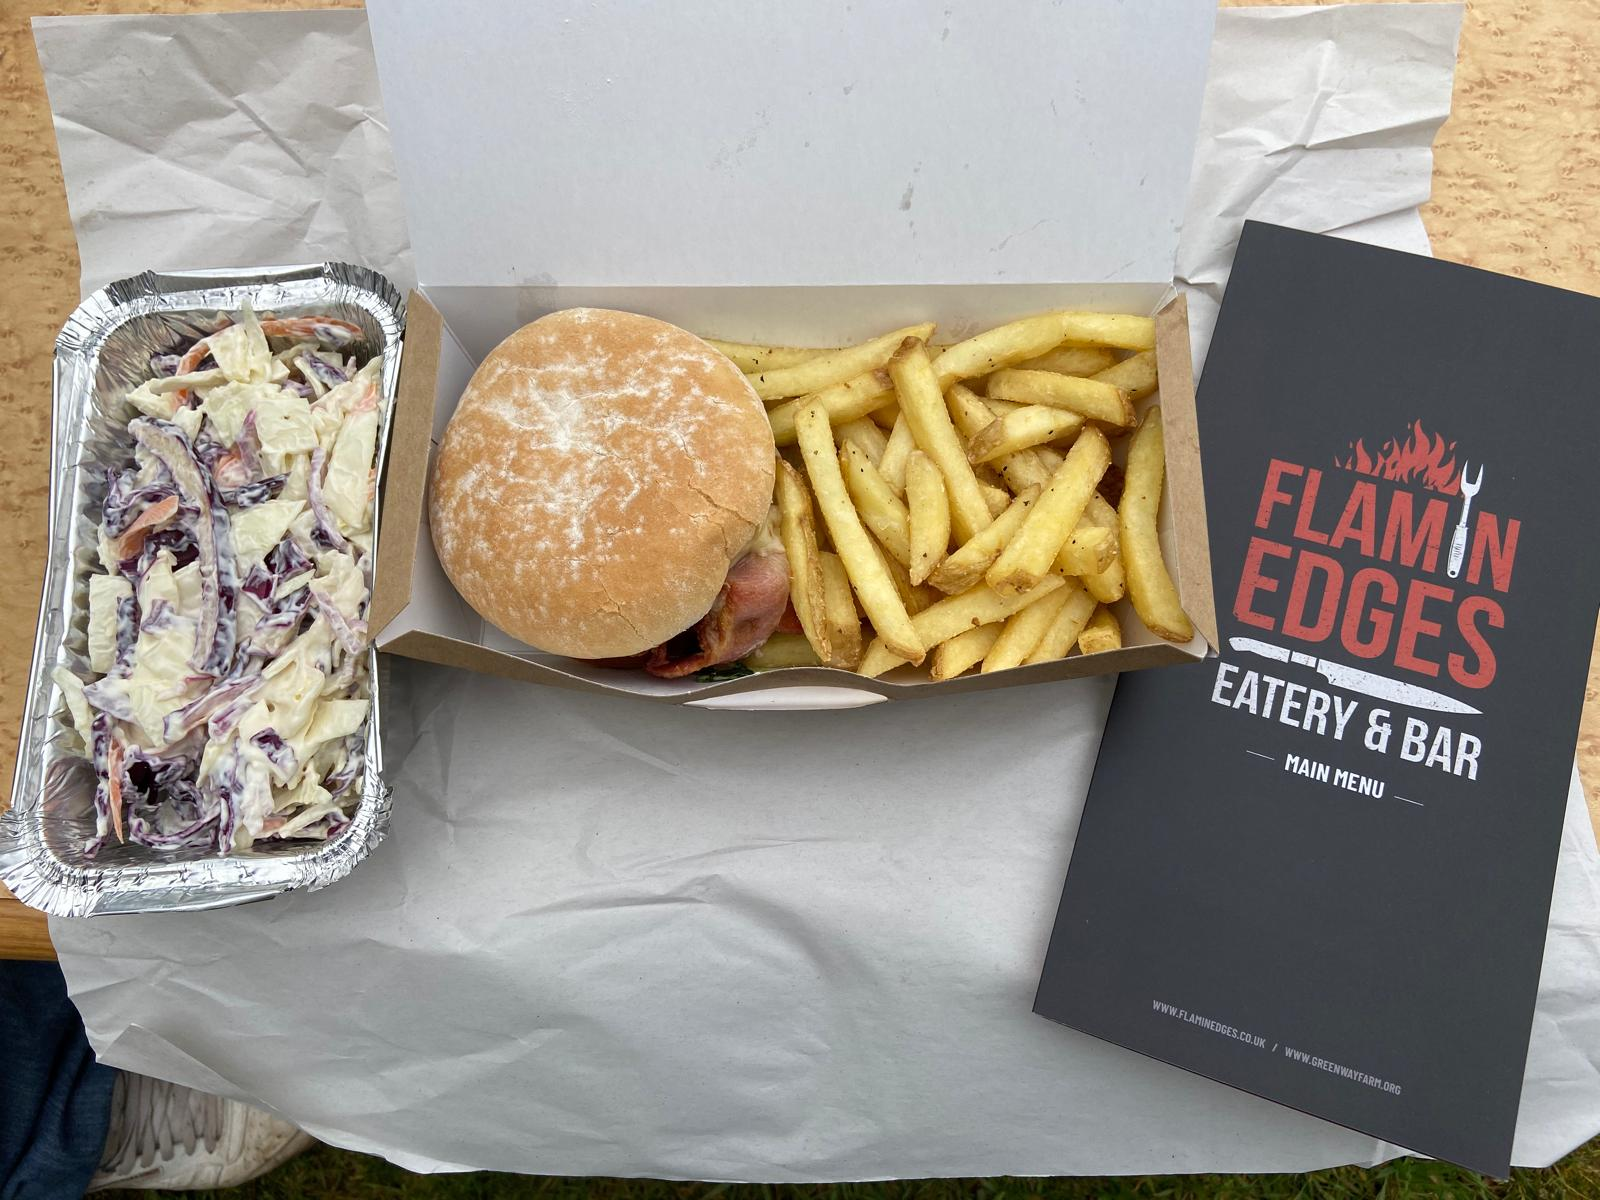 Burger Flamin Edges Eatery and Bar Greenway campsite